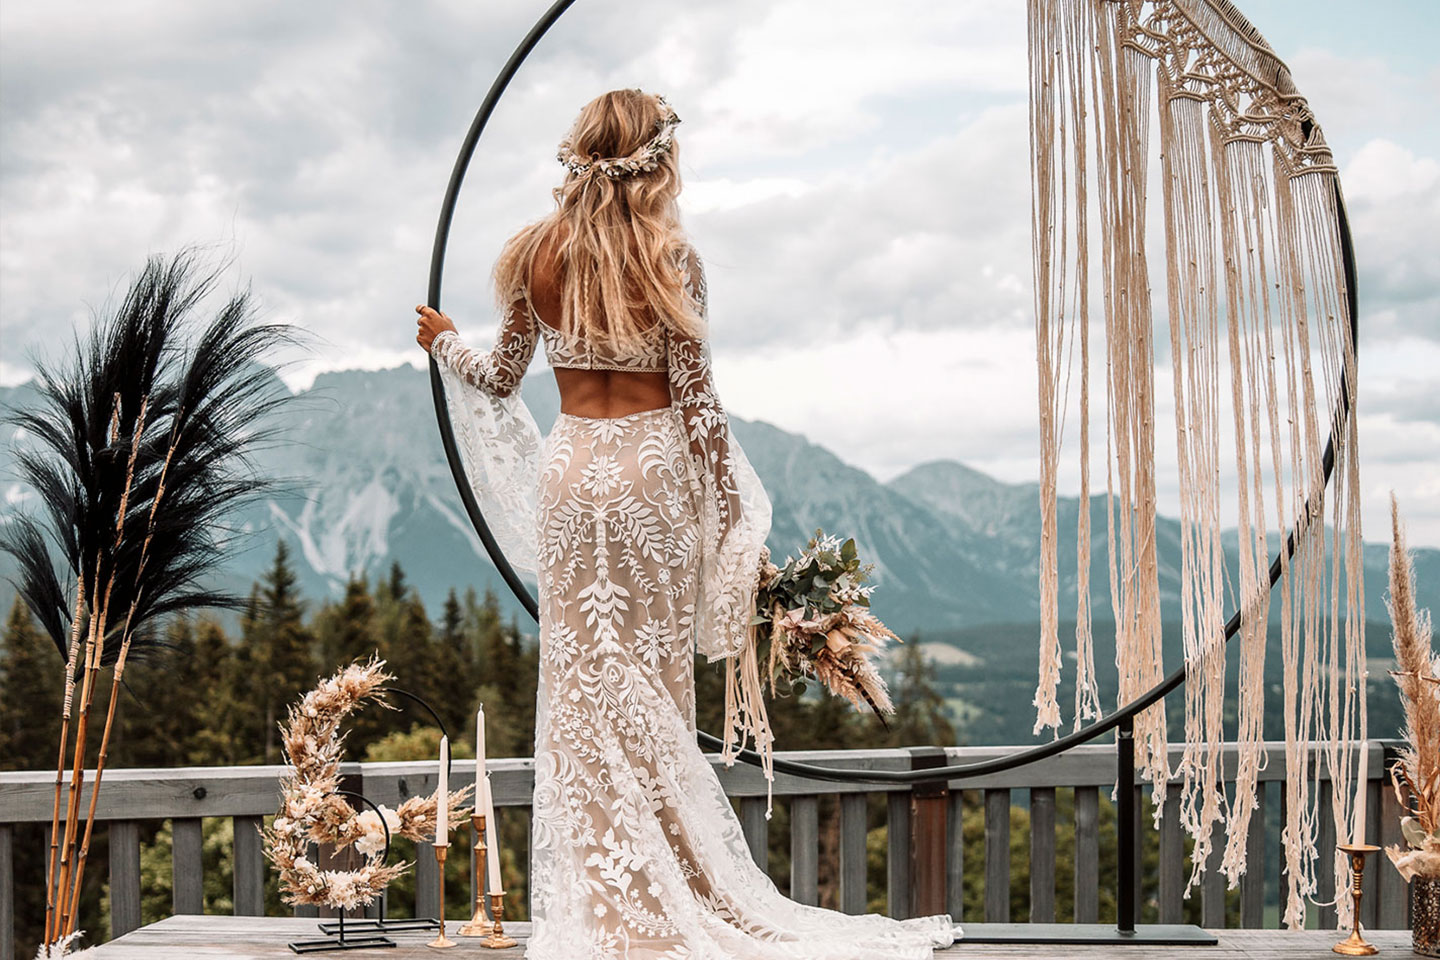 Boho-Weddingdreams in der Almwelt Austria